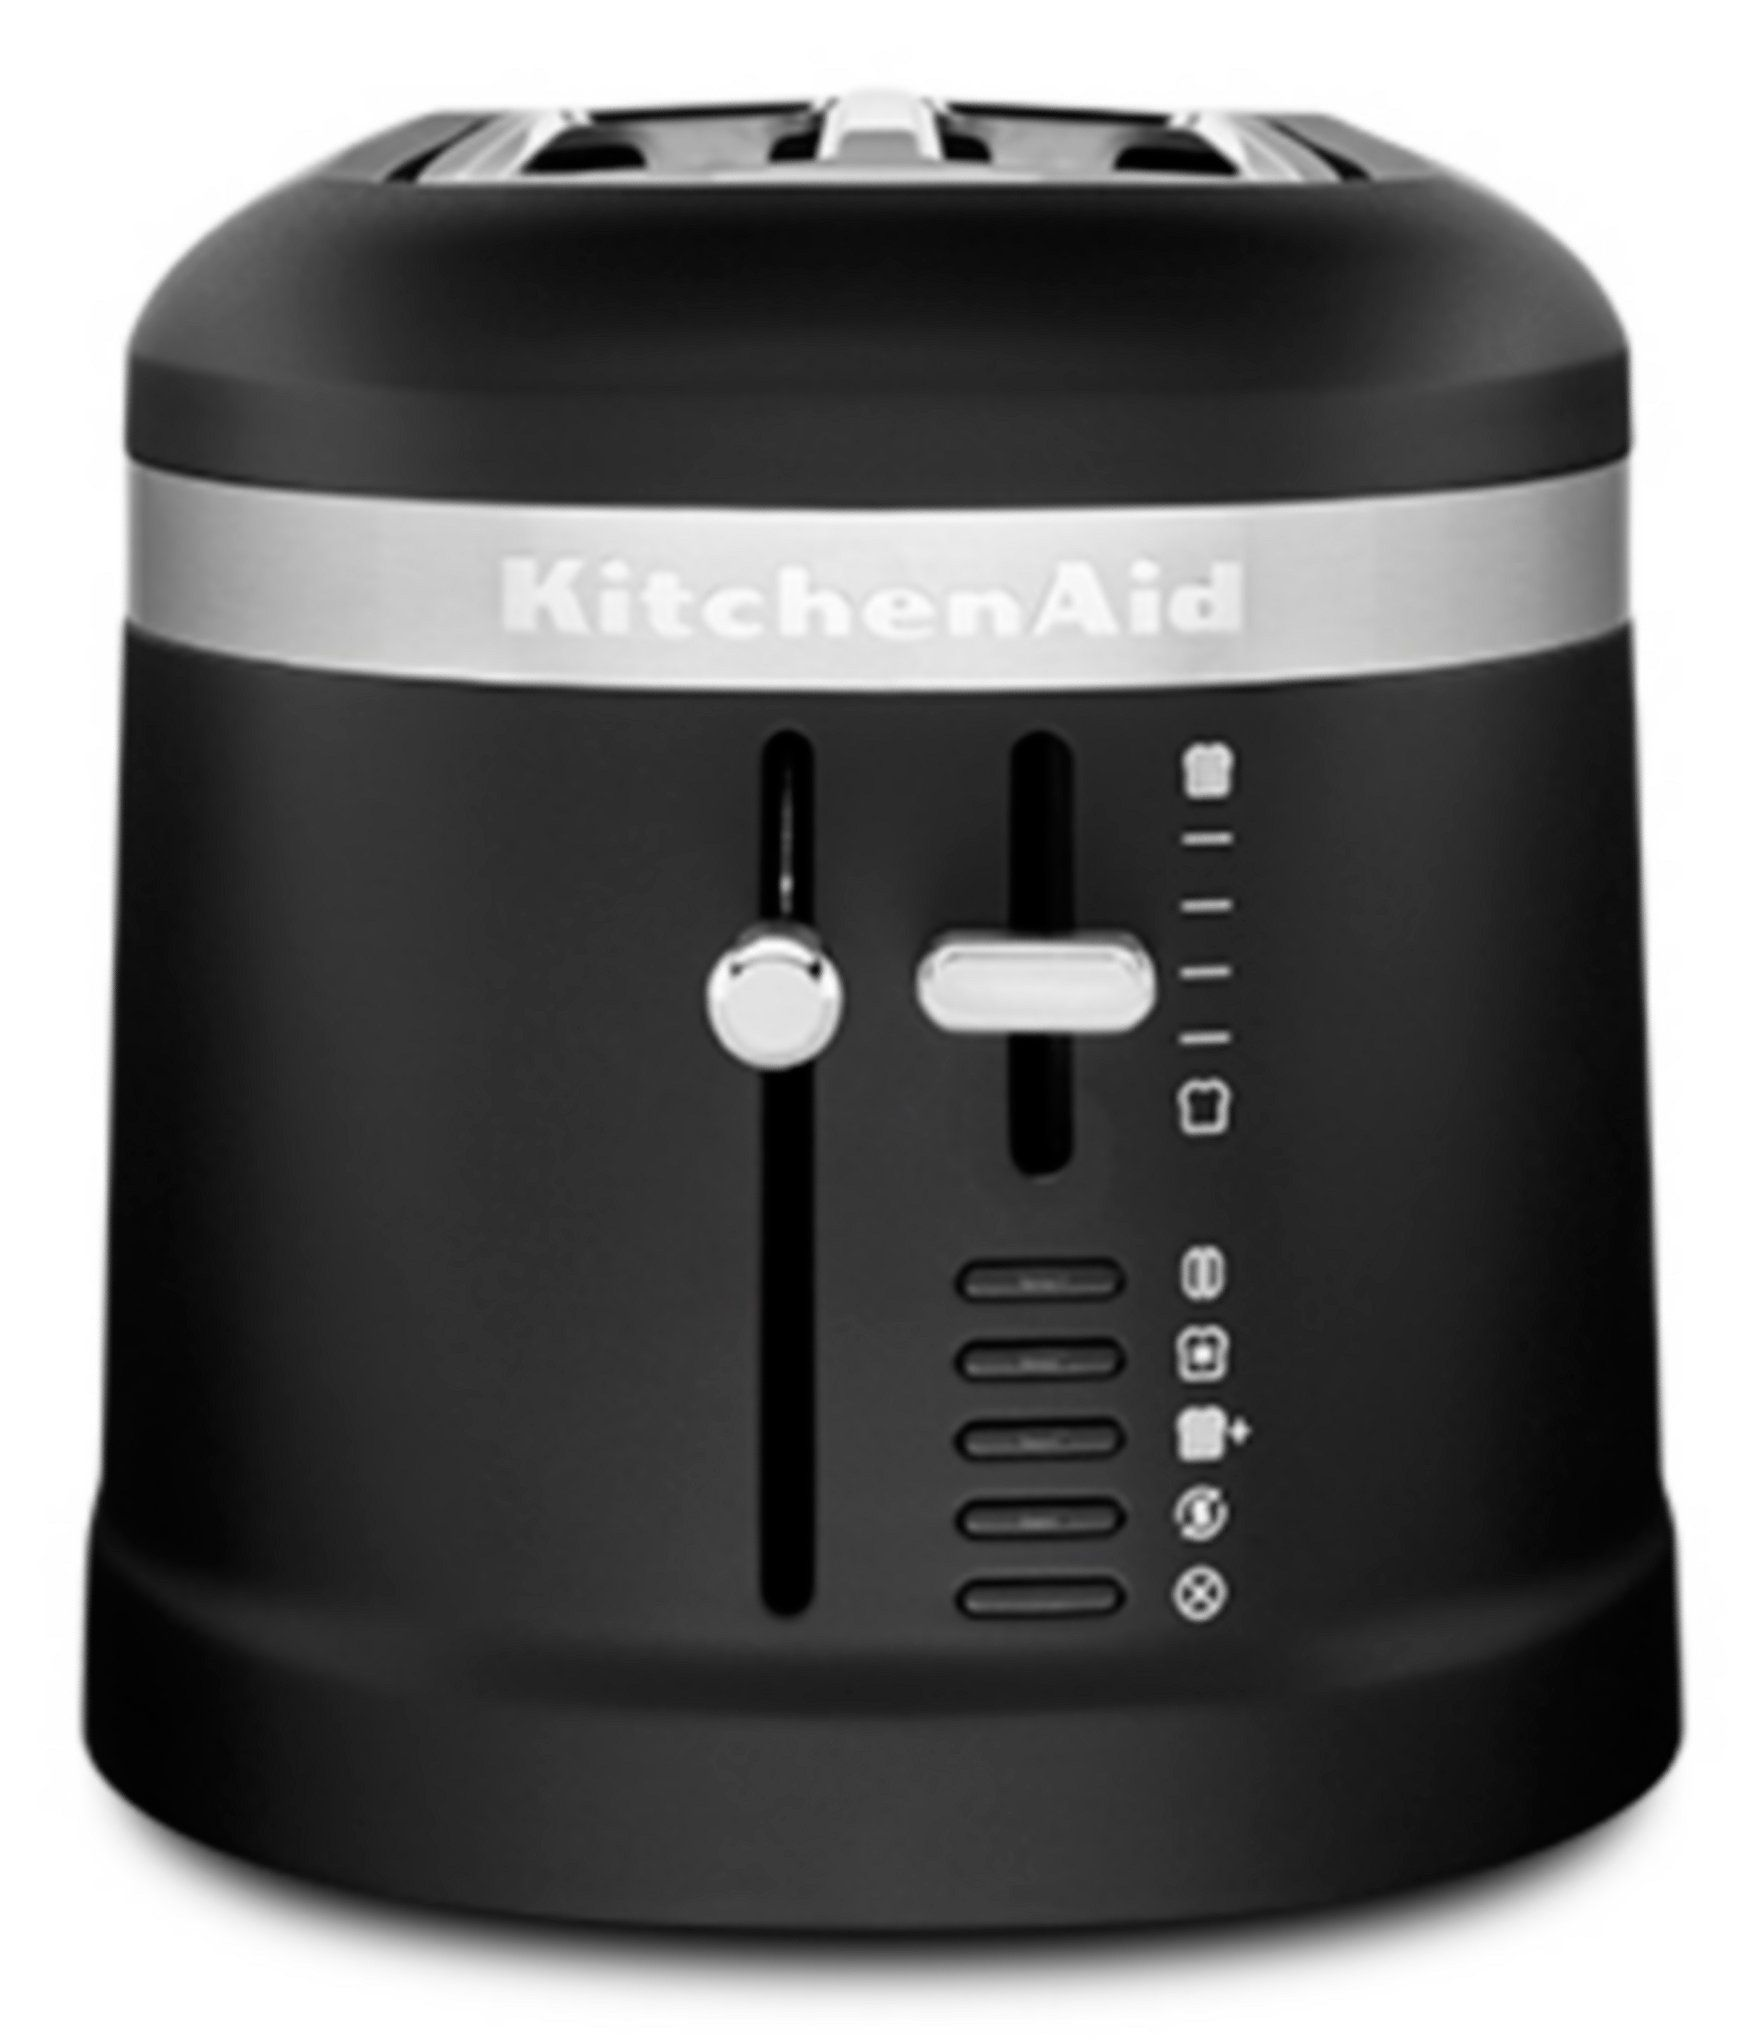 Kitchenaid 4 045 Slice Long Slot Toaster With High 045 Lift Lever Black Matte In 2021 Kitchen Aid Black Toaster Long Slot Toaster